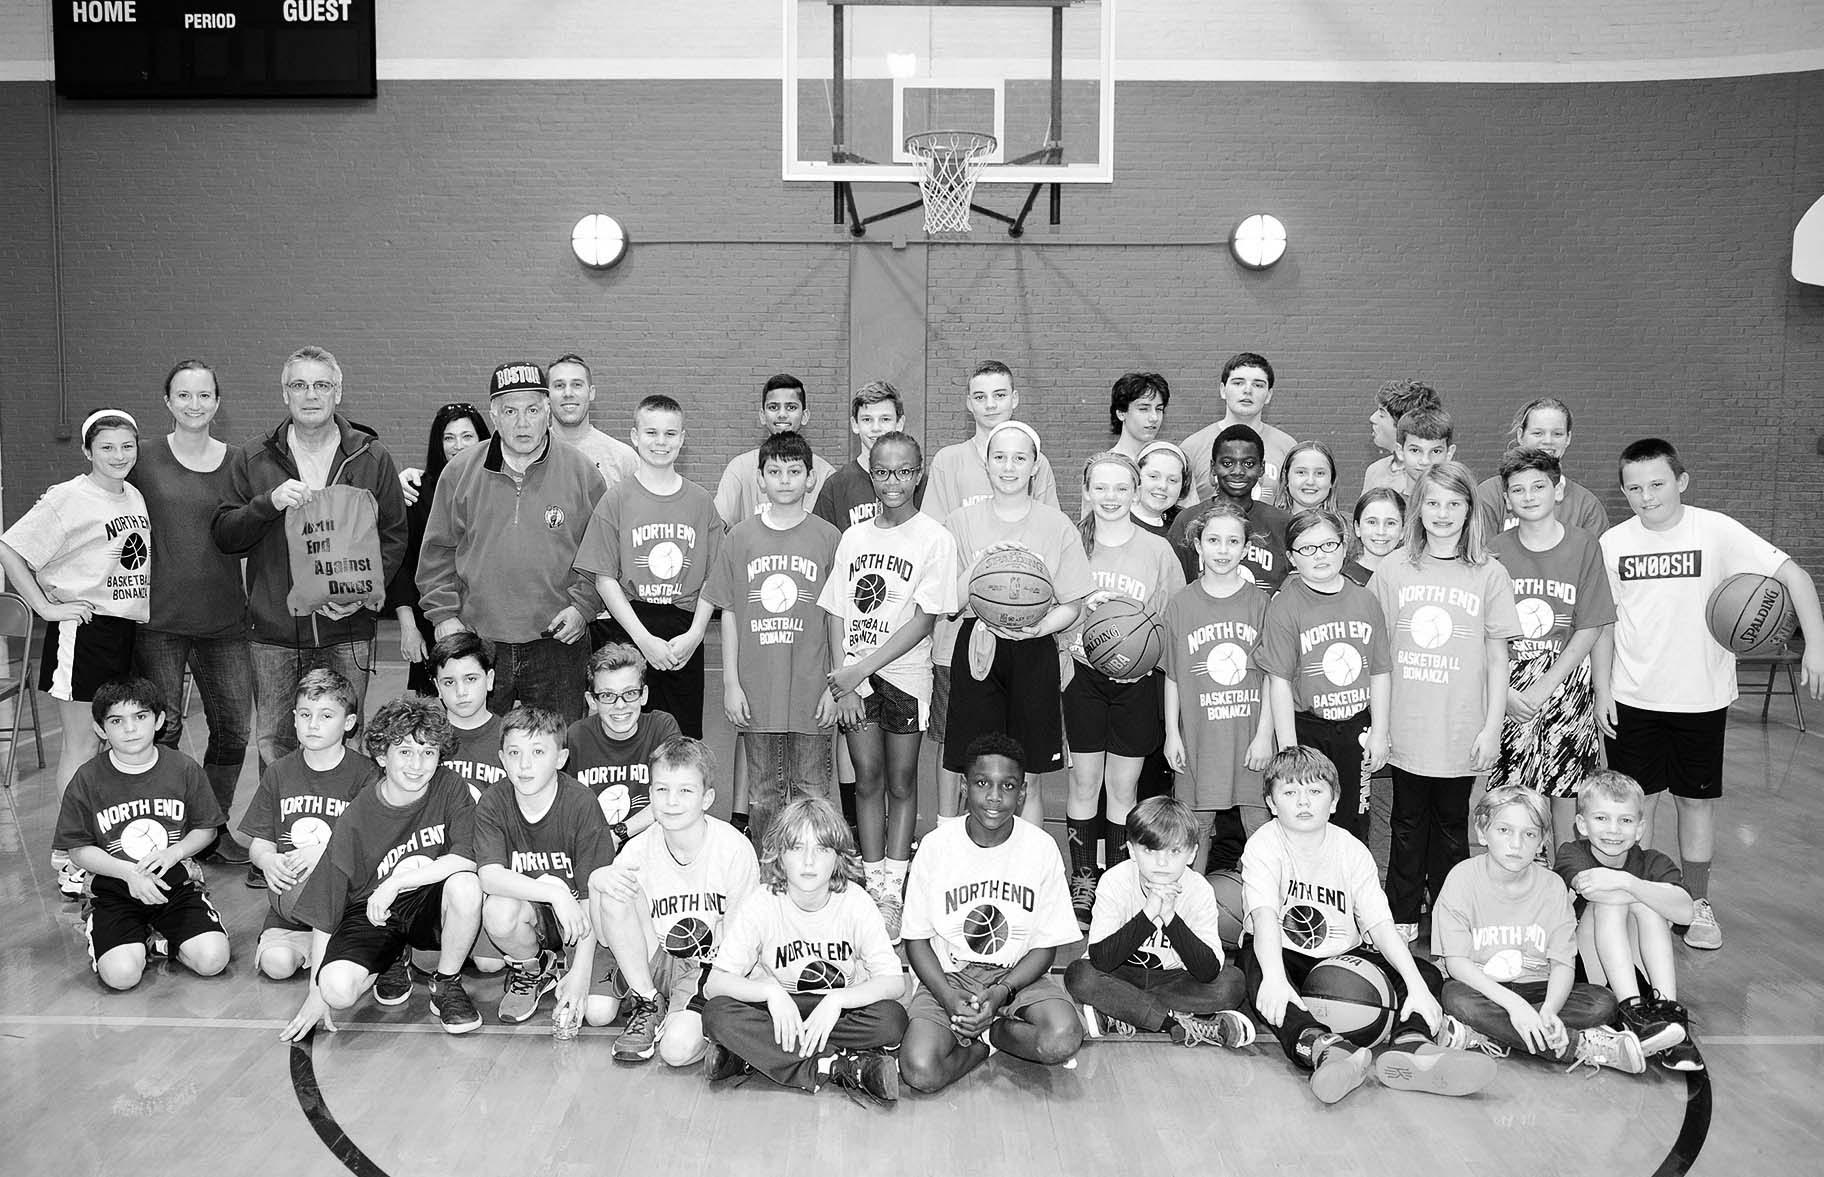 Children, organizers and coaching staff stood together in the Nazzaro Center before the start of the basketball clinic.